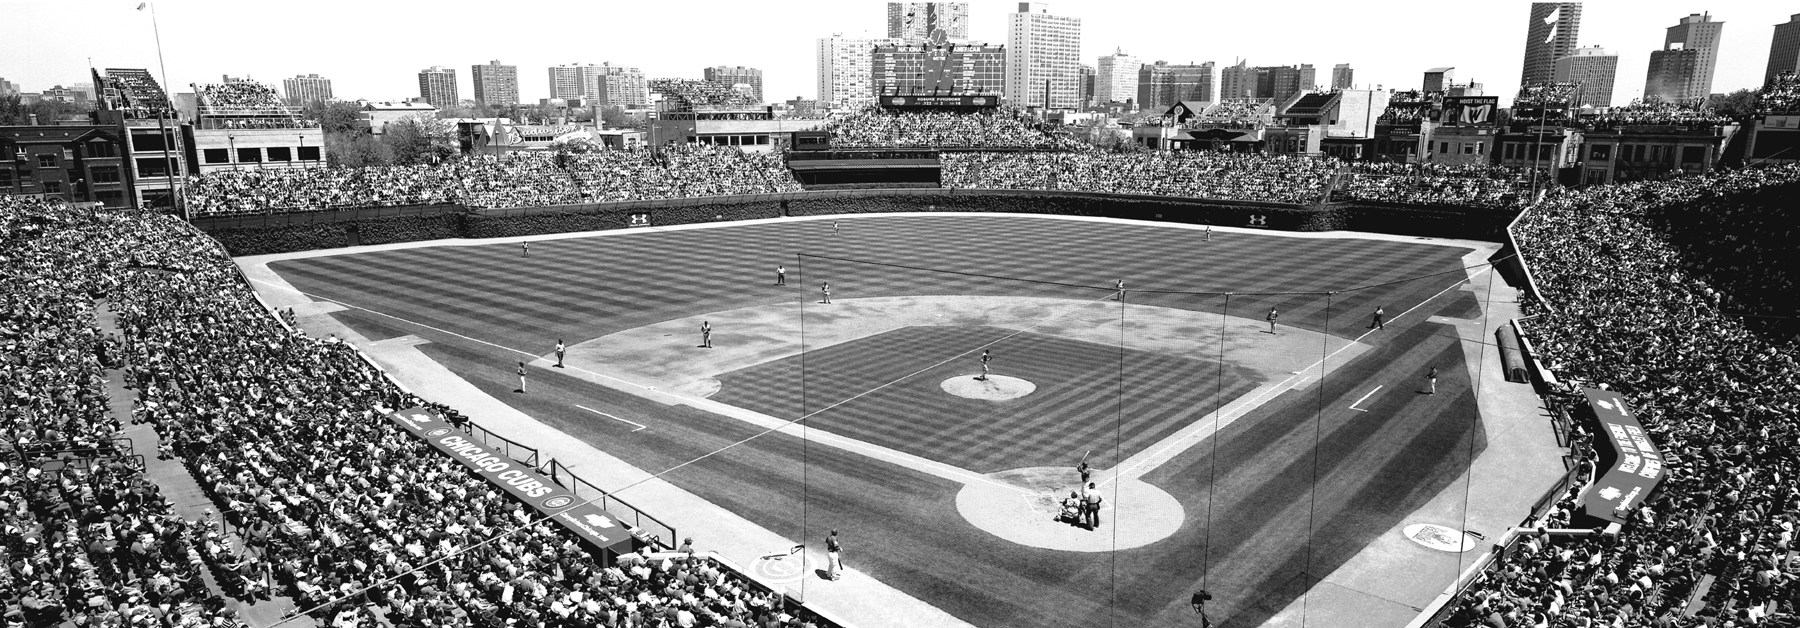 Free Download Chicago Cubs Wallpaper Black White Wrigley Field